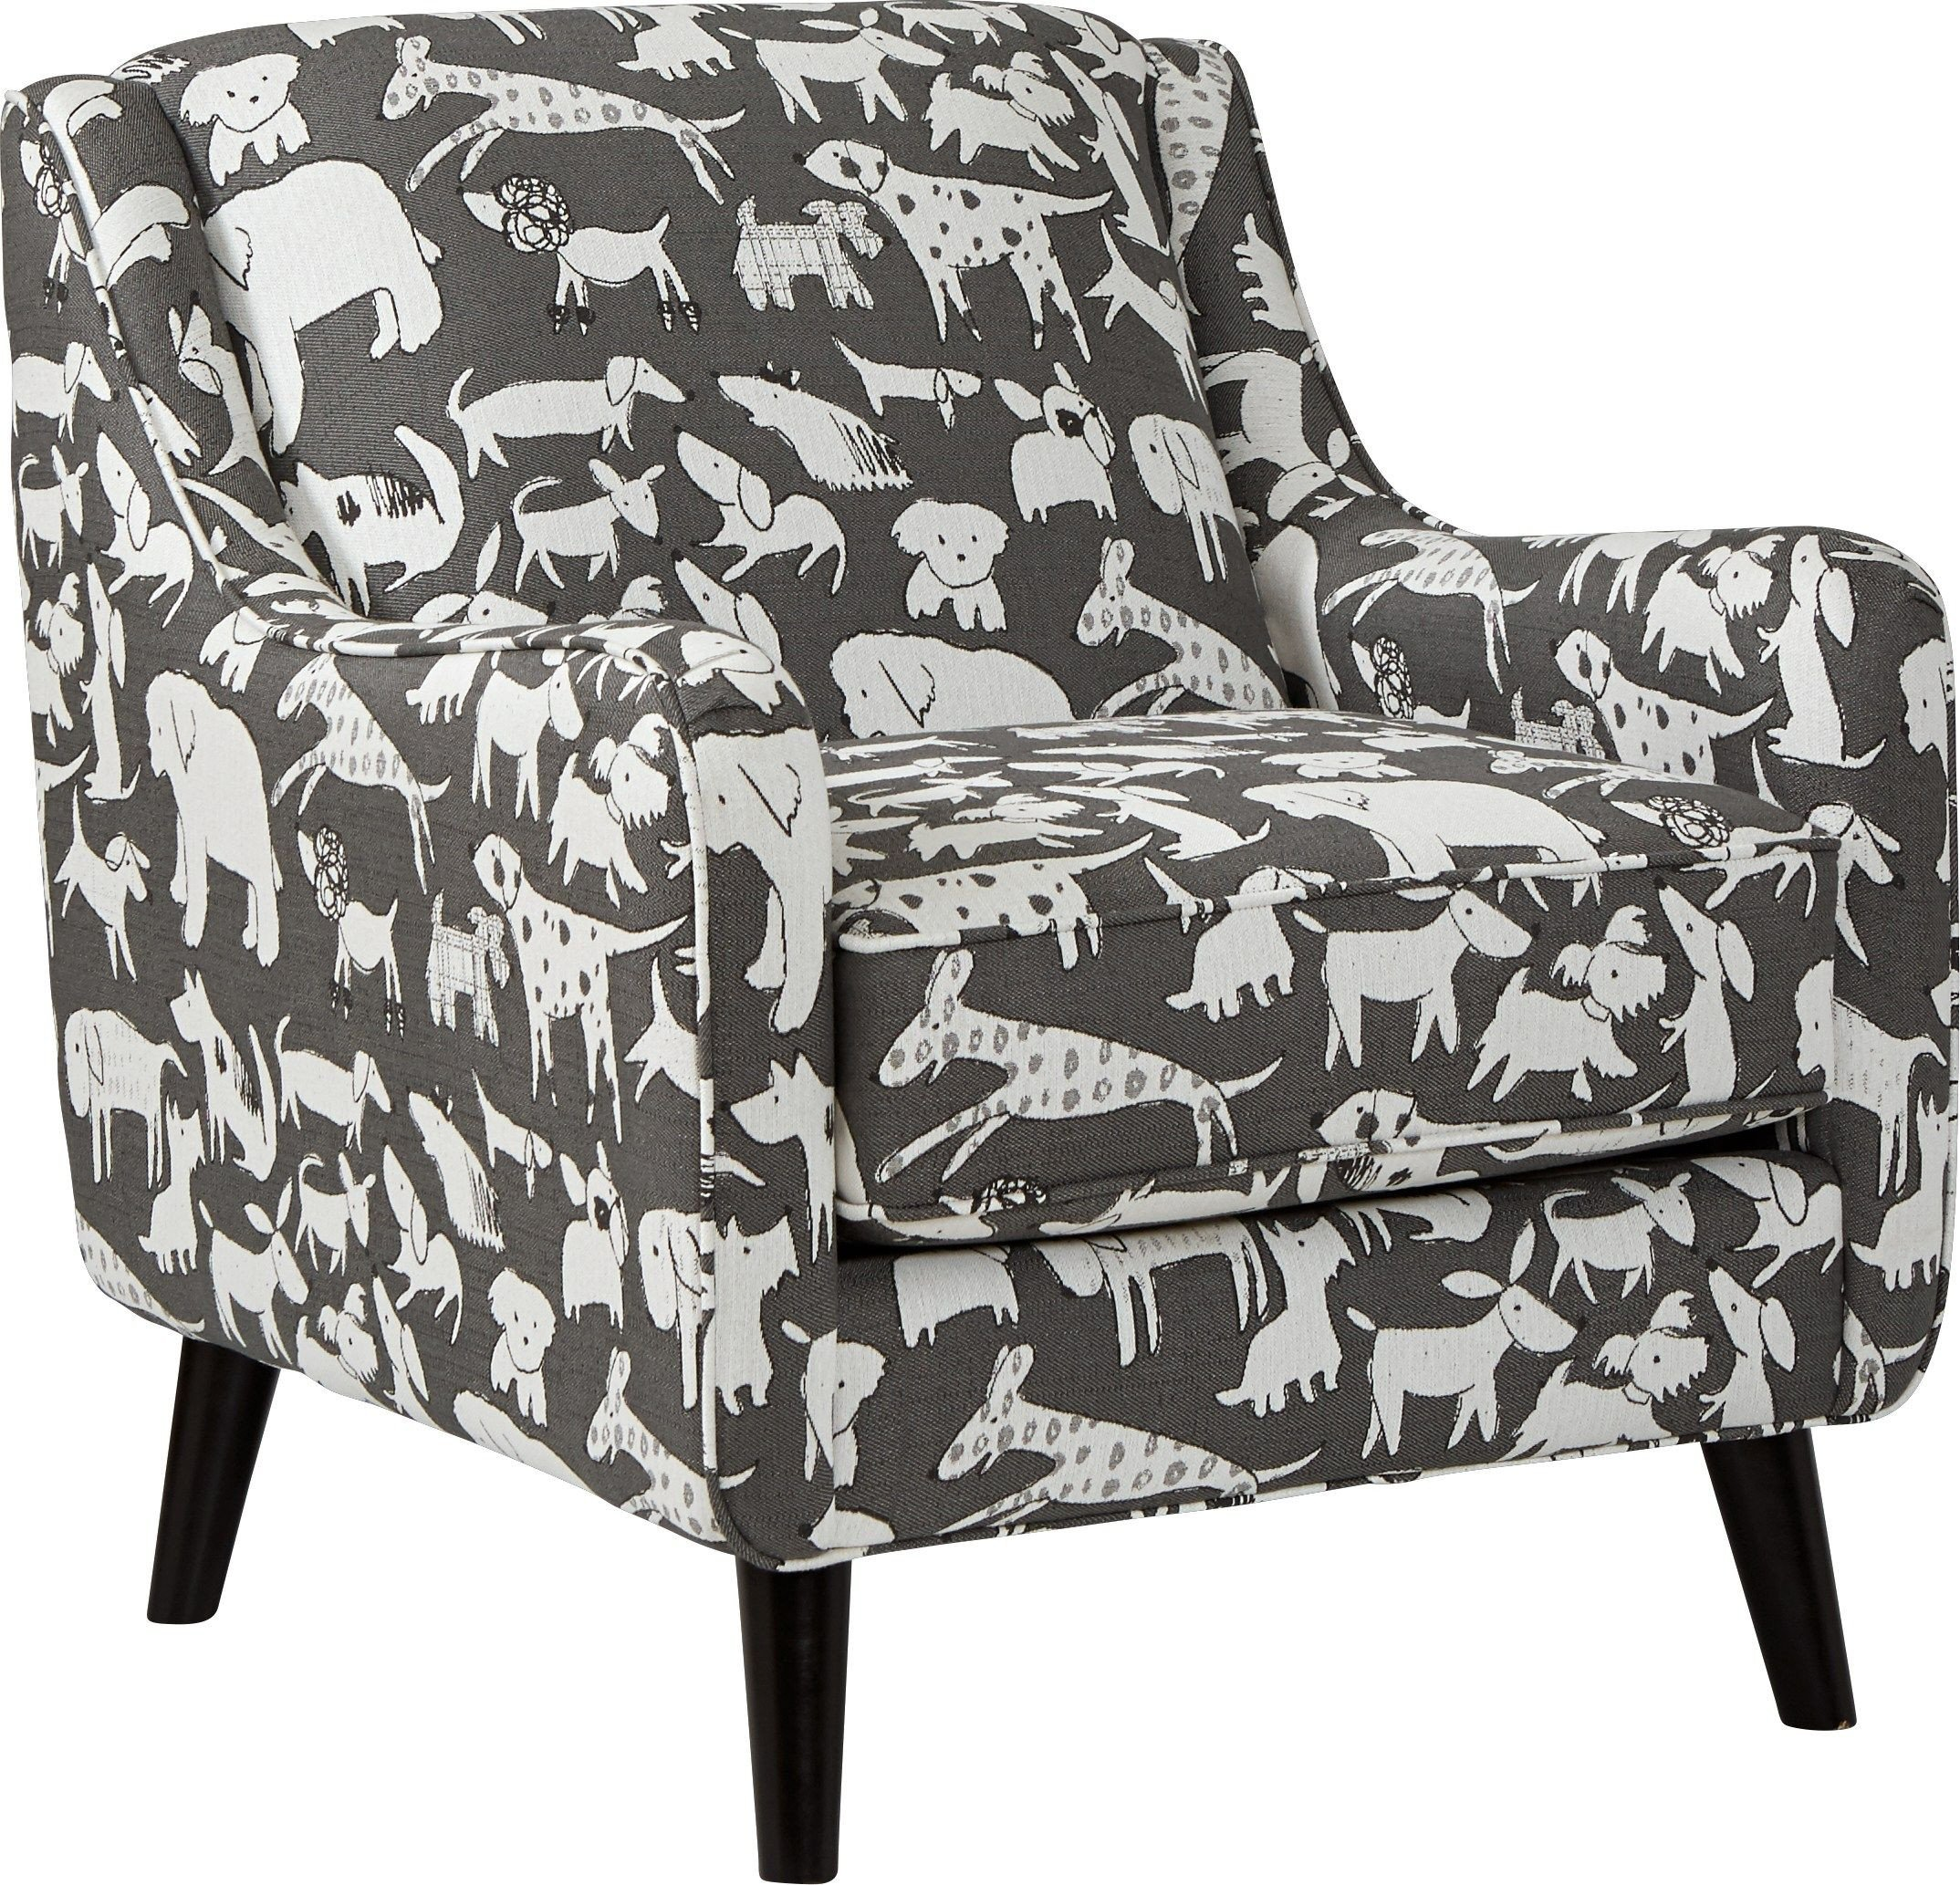 Accent Chairs for Bedroom Awesome Barkley Heights Dog Patterned Accent Chair